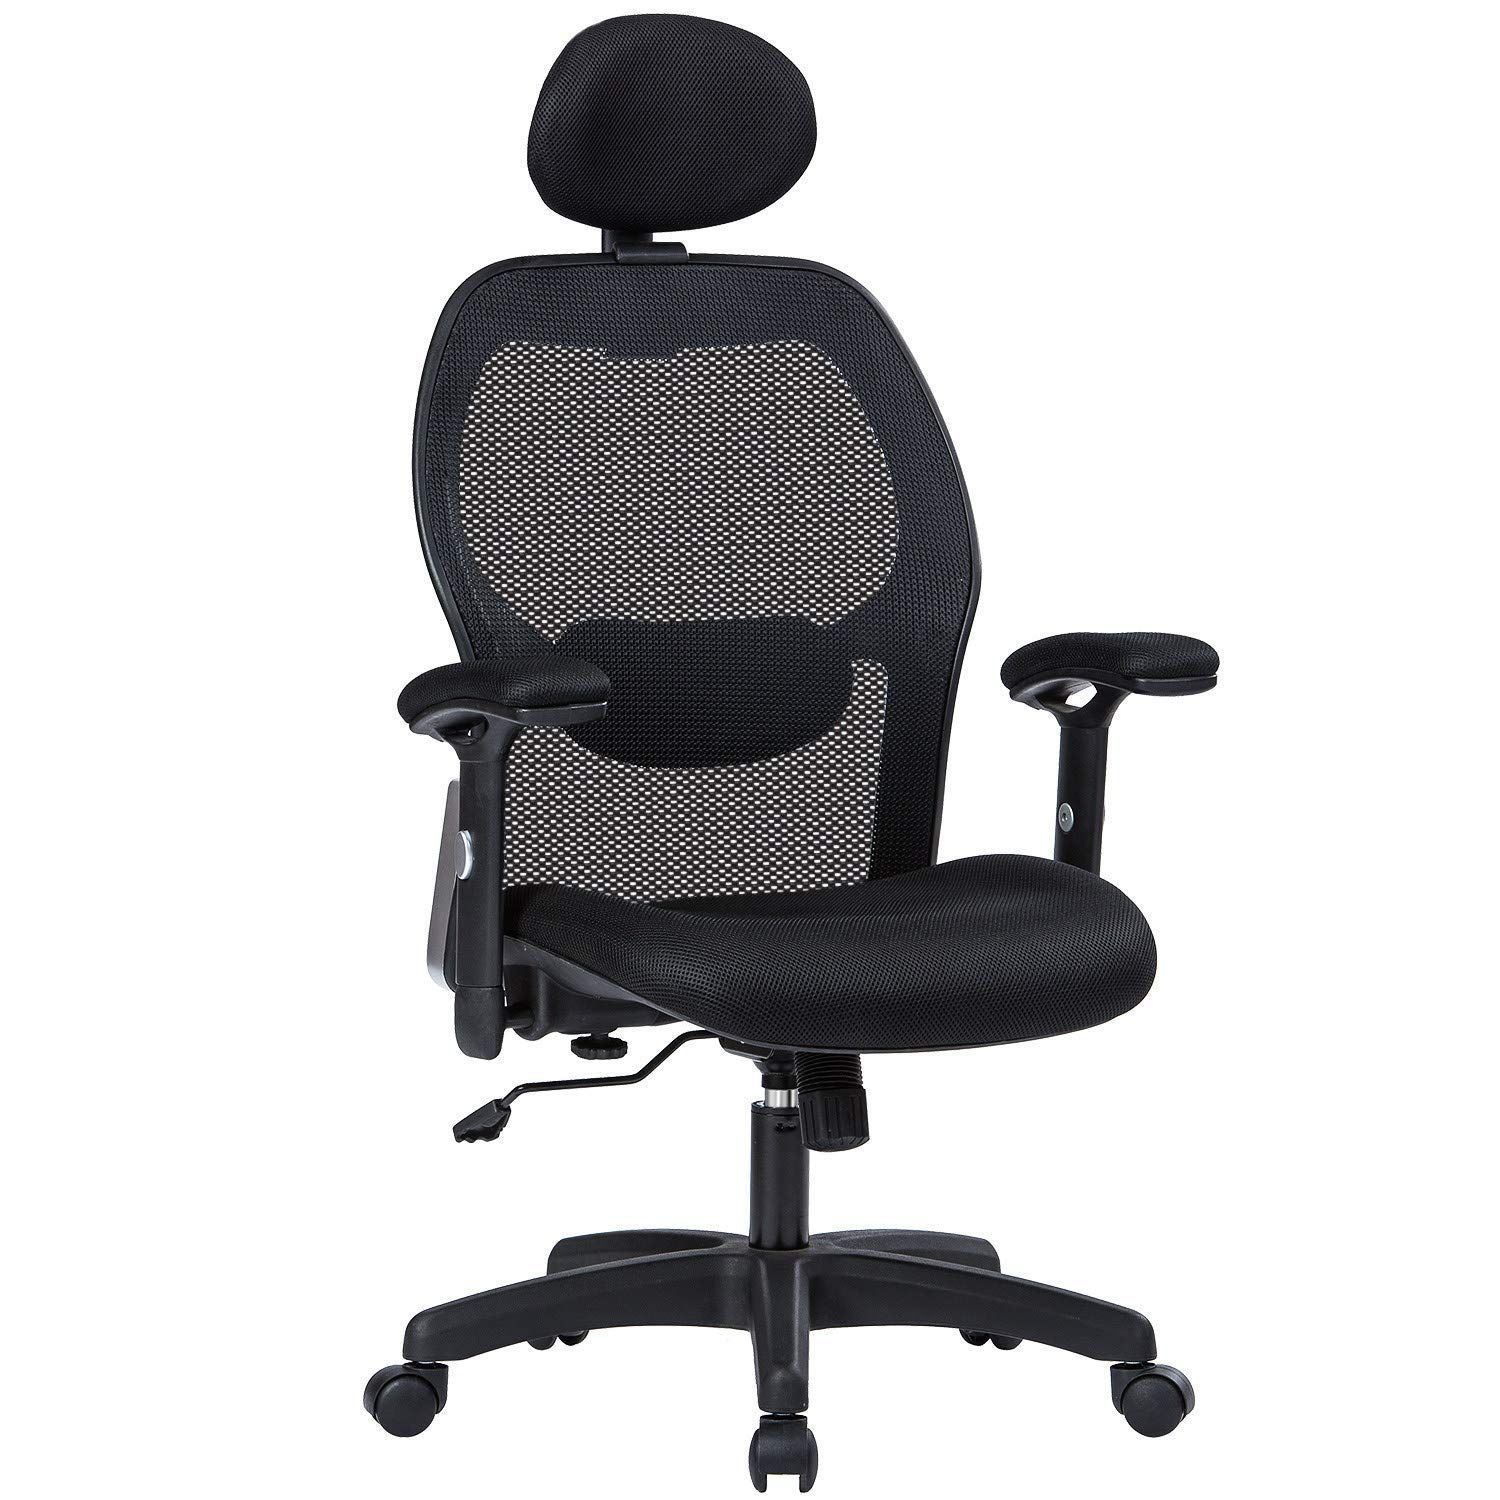 Lianfeng Ergonomic Office Chair High Back Executive Swivel Computer Desk Chair With Adjustable Armrests And Headrest Back Lumbar Support Black Computer Desk Chair Ergonomic Office Chair Ergonomic Chair